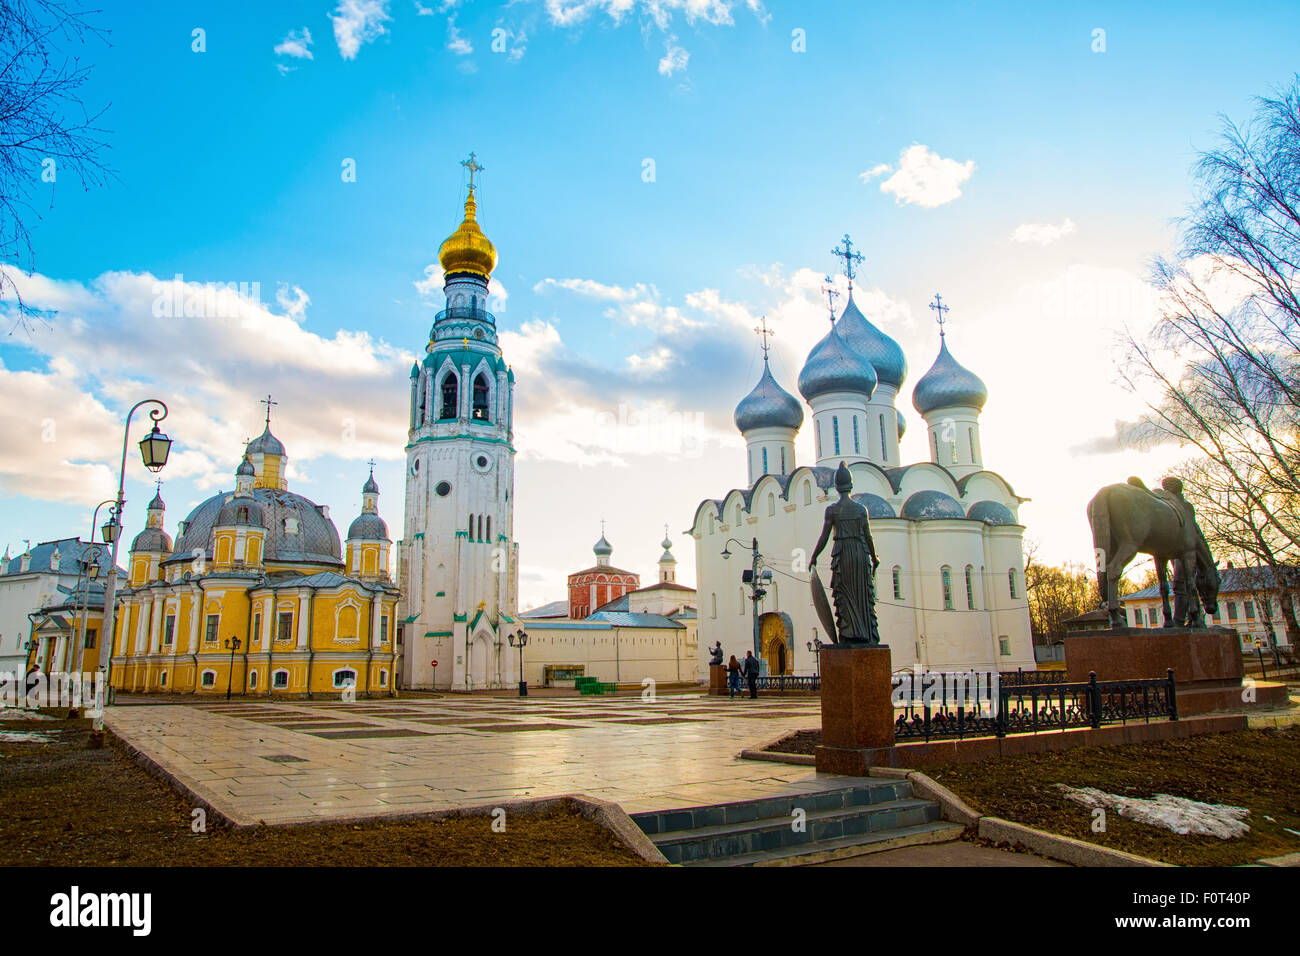 Sophia Cathedral and bell tower in the city of Vologda. Russia - Stock Image